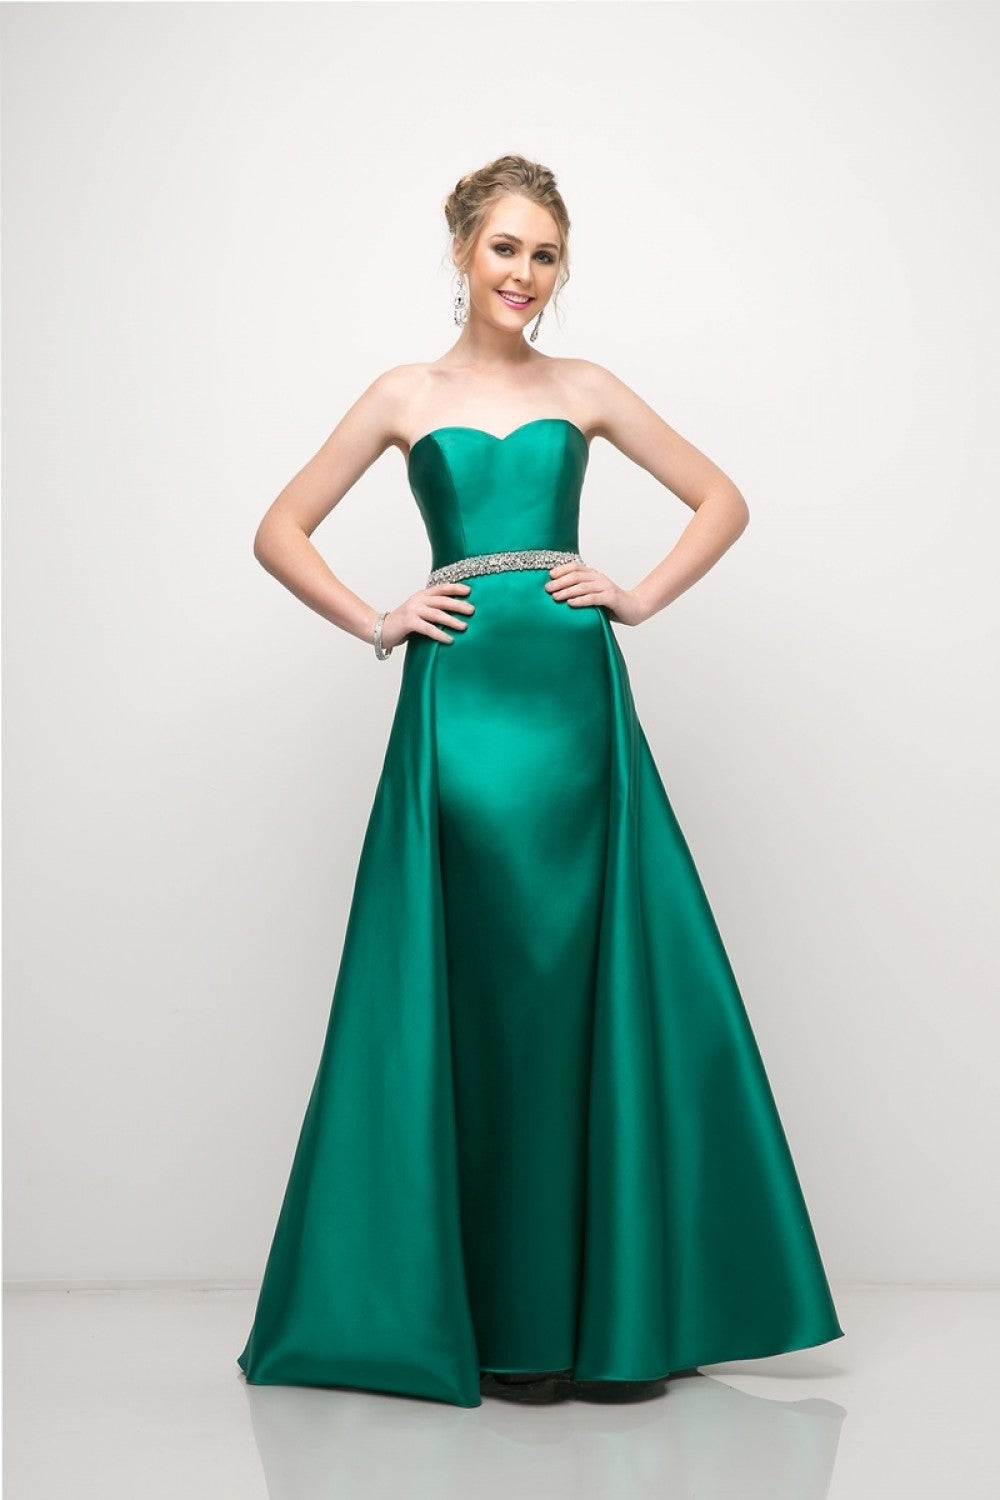 Strapless Mikado Gown With Sheath Underskirt And Ballgown Overskirt, Complete With Beaded Belt